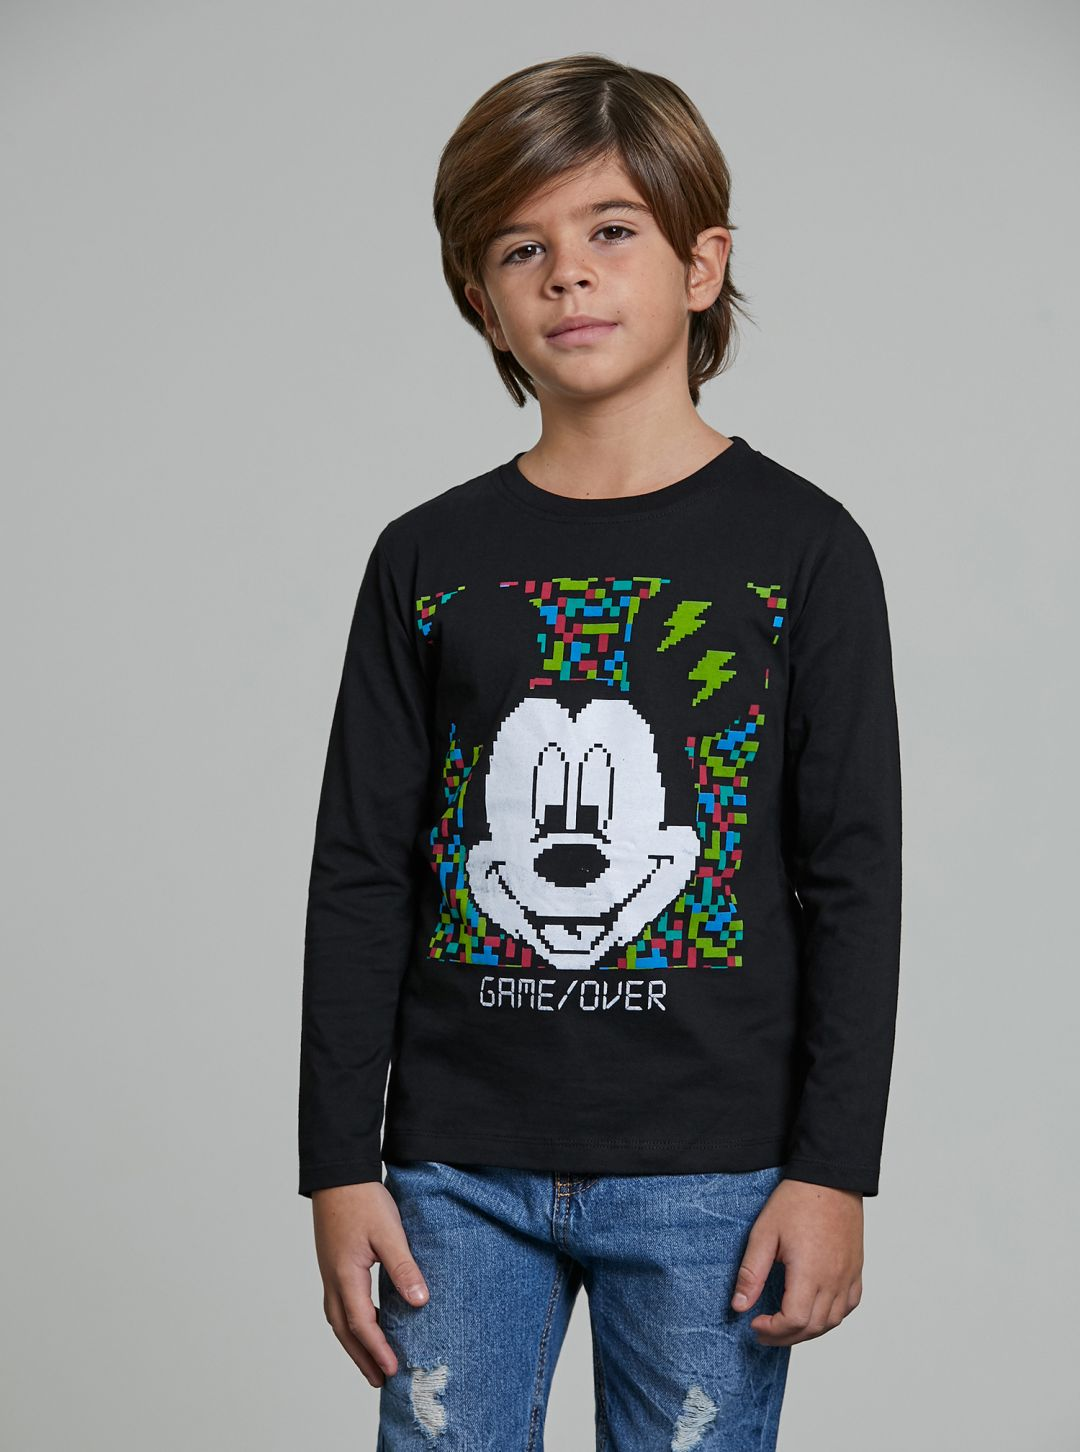 T-shirt by Mickey Mouse